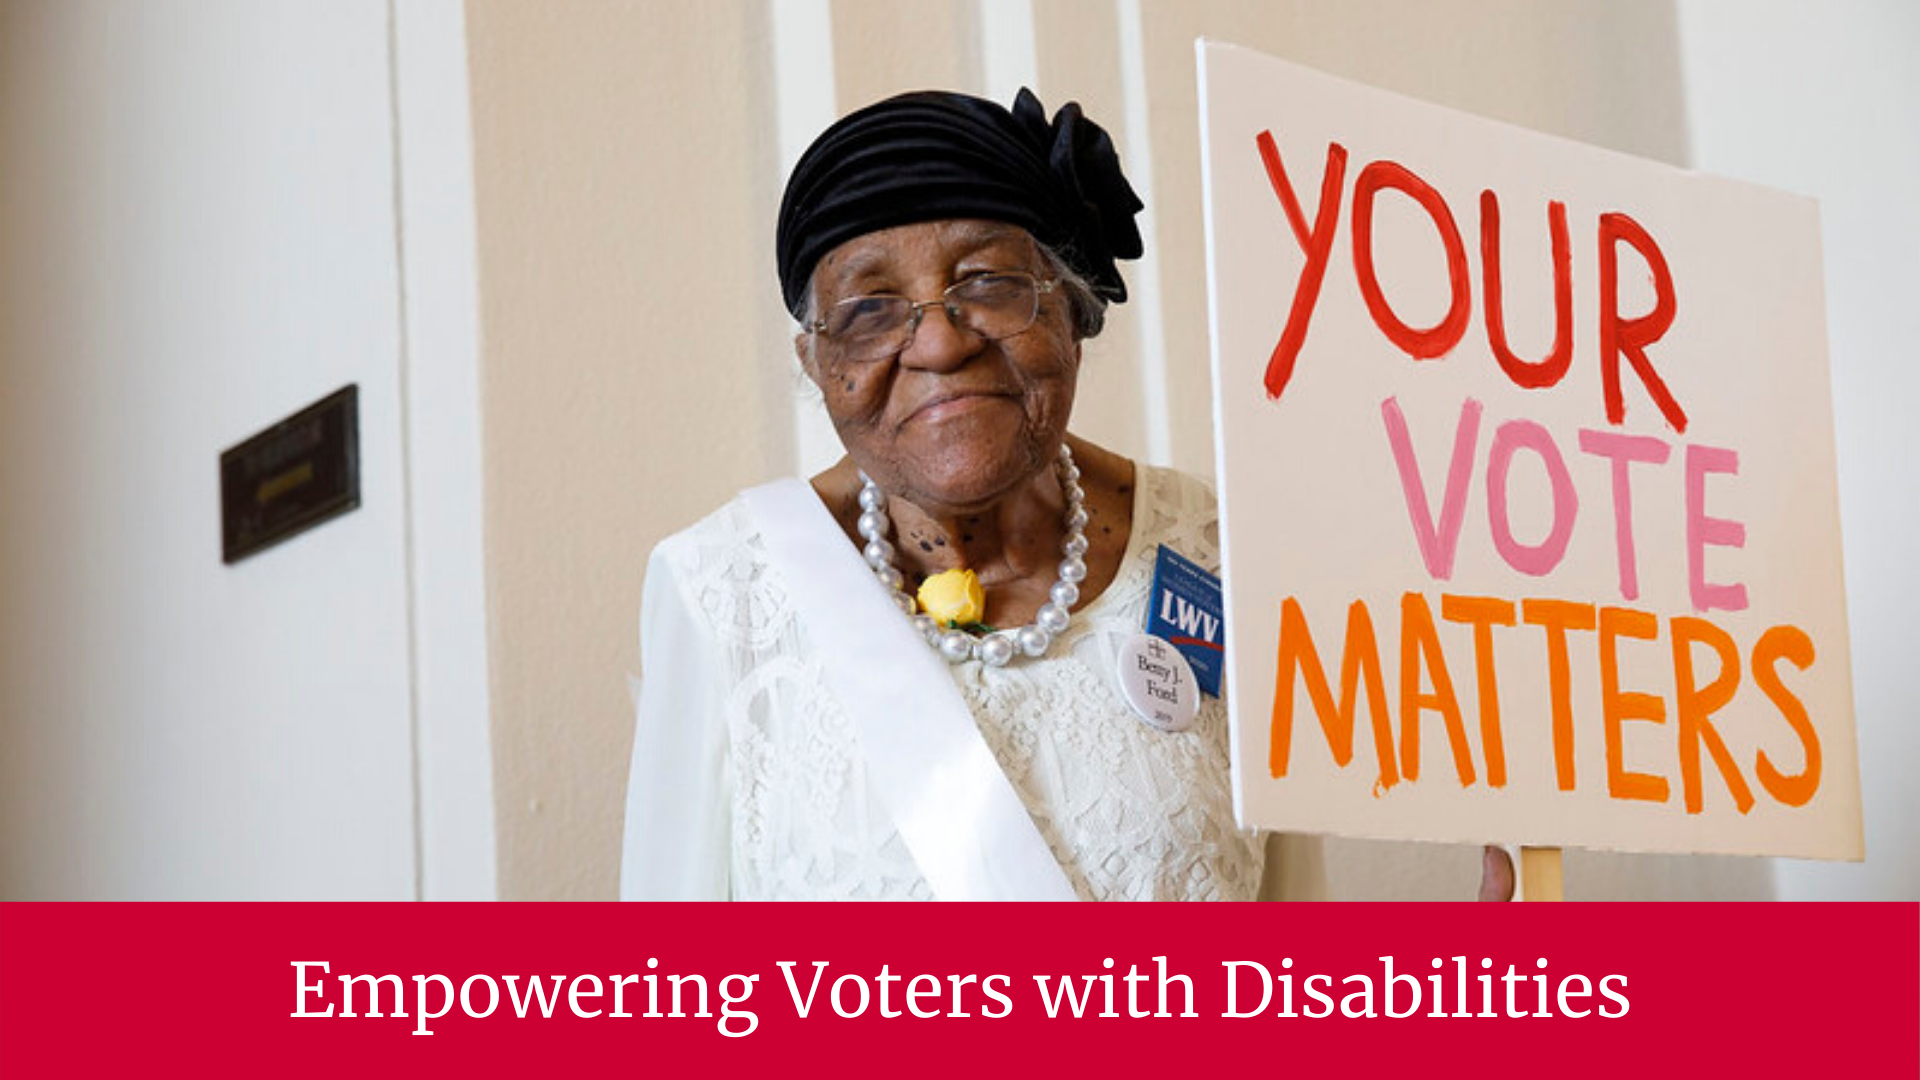 Empowering Voters with Disabilities. Your Vote Matters!